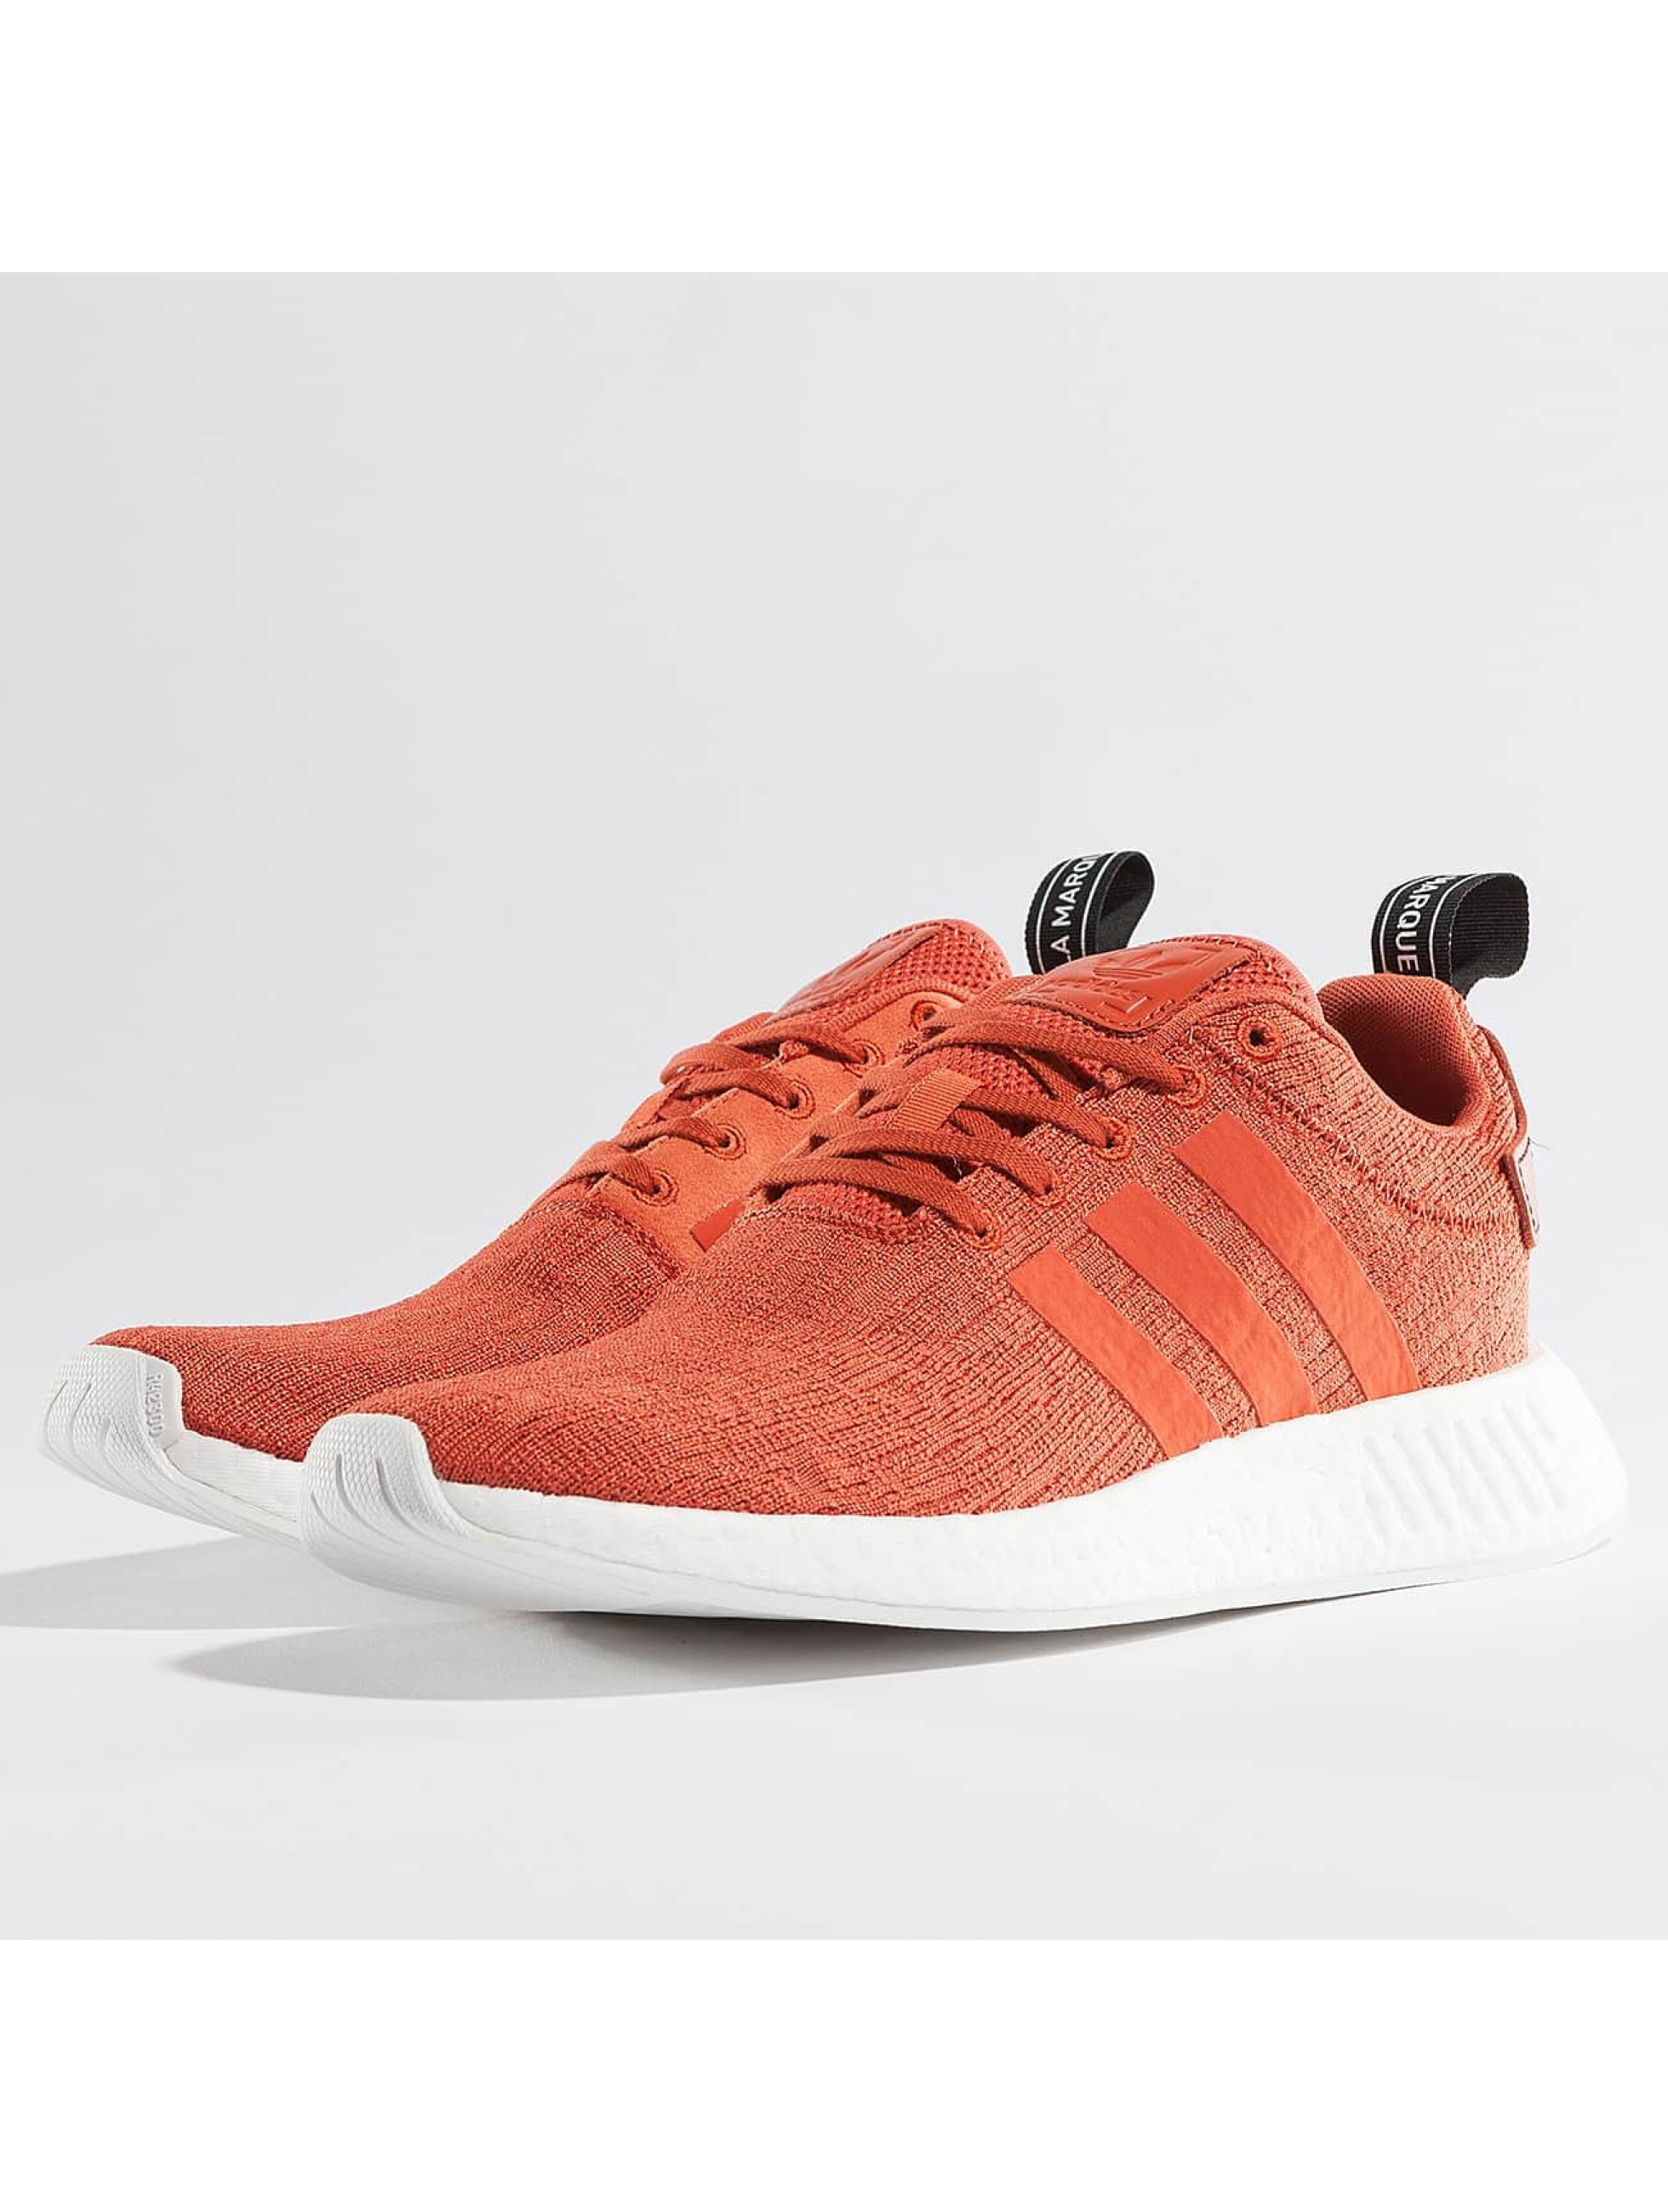 adidas Sneakers NMD_R2 red